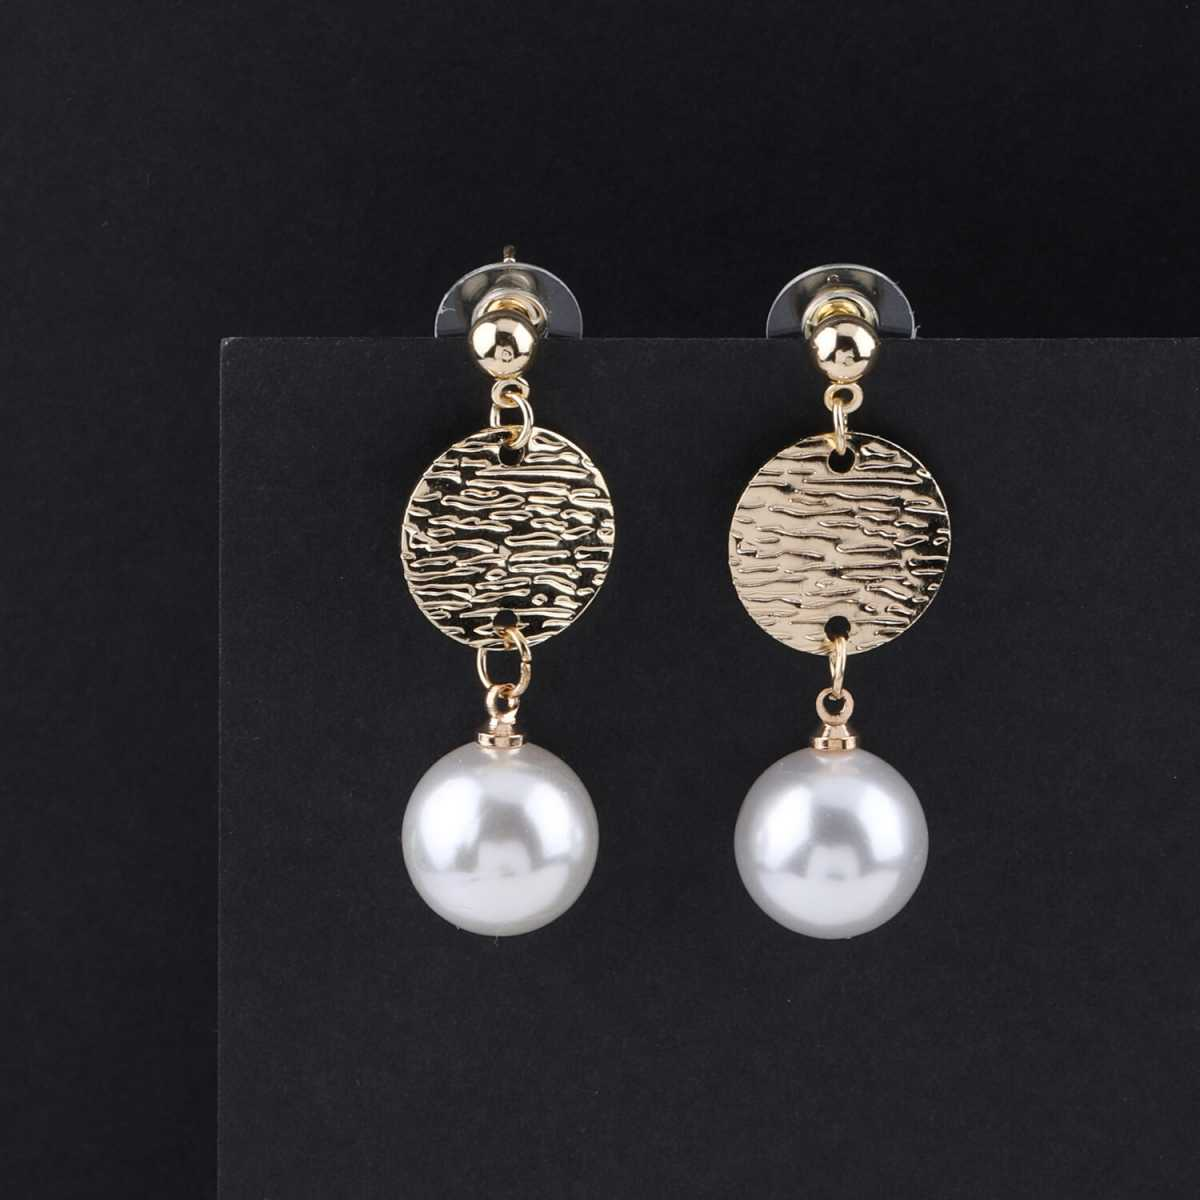 SILVER SHINE Party Wear Stylish  Dangle Earring For Women Girl